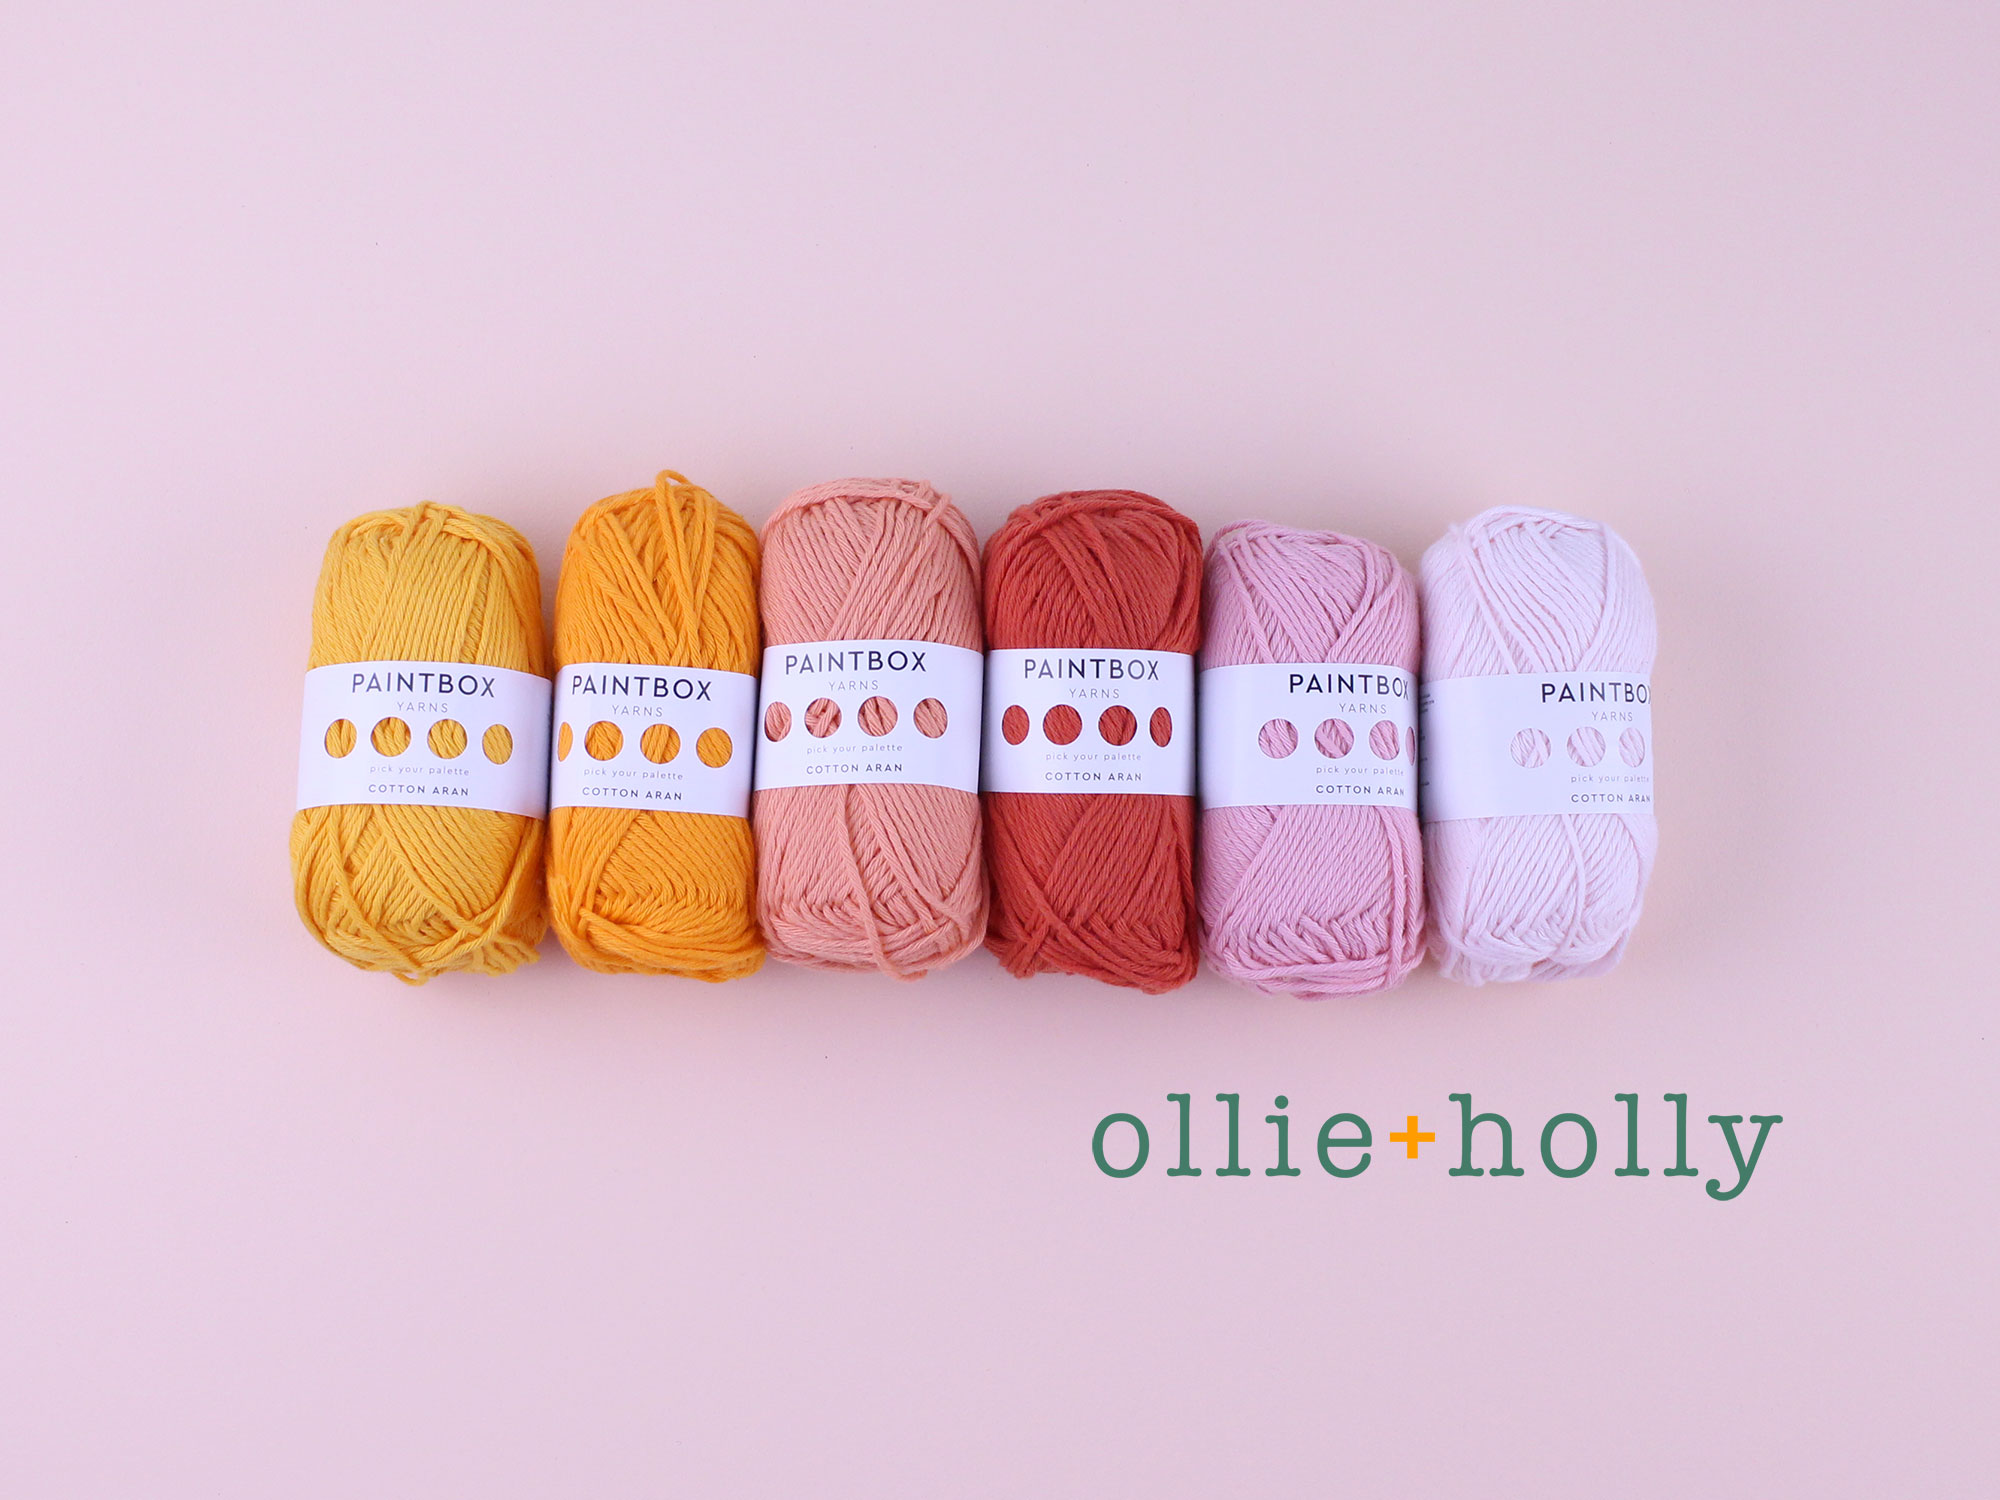 Ollie Holly Paintbox Cotton Aran